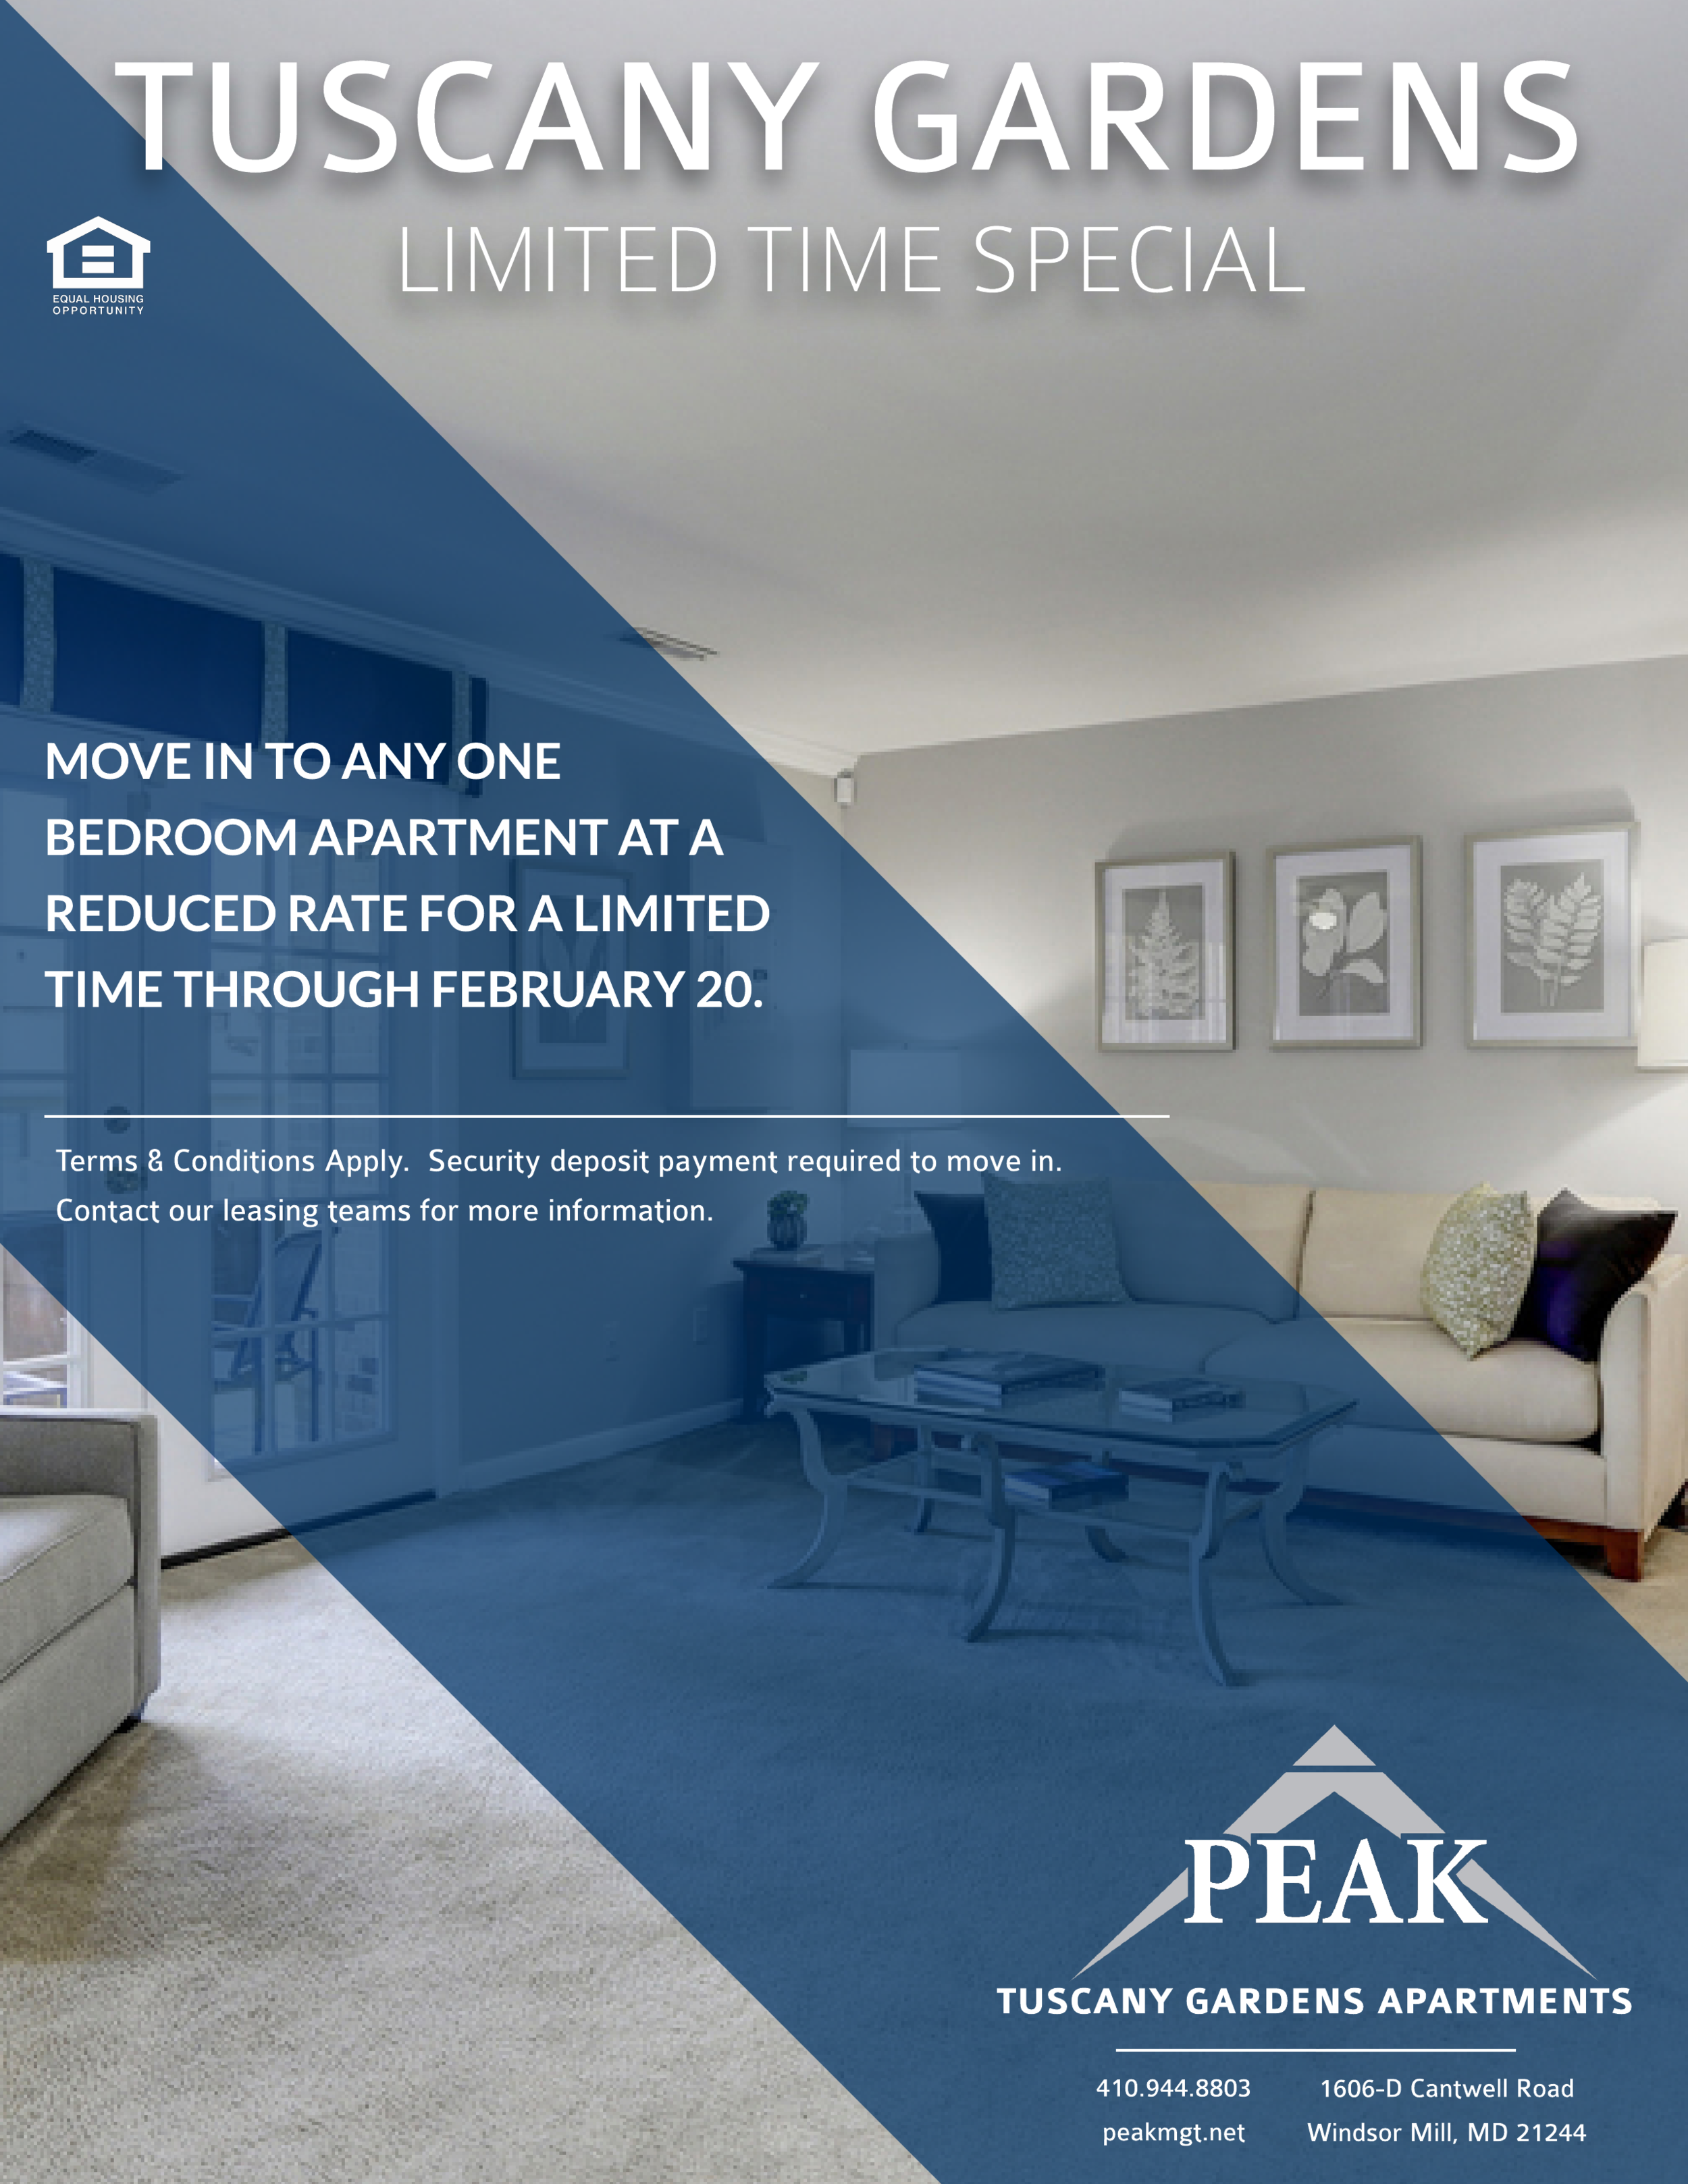 Tuscany Gardens Apartments in Windsor Mill, MD 21244 - February 2018 Rent Special